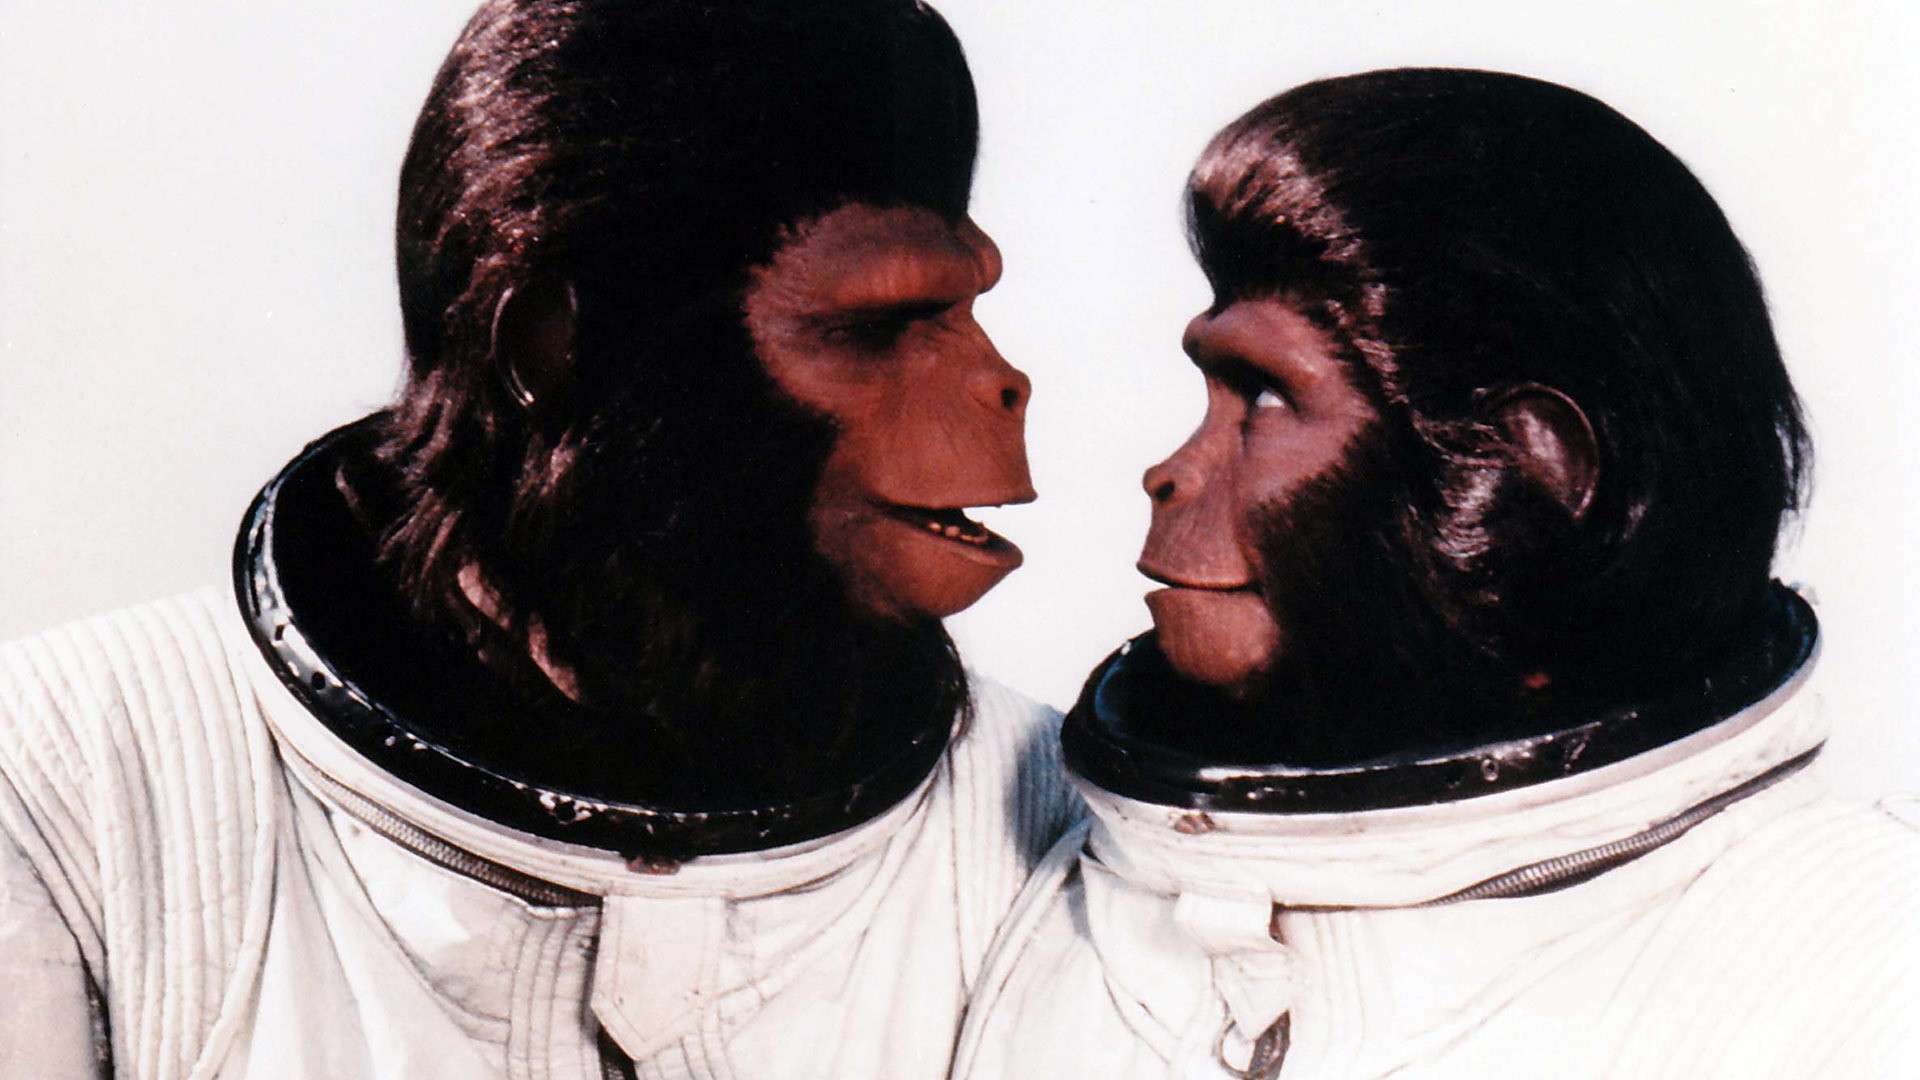 escape-from-the-planet-of-the-apes.jpg